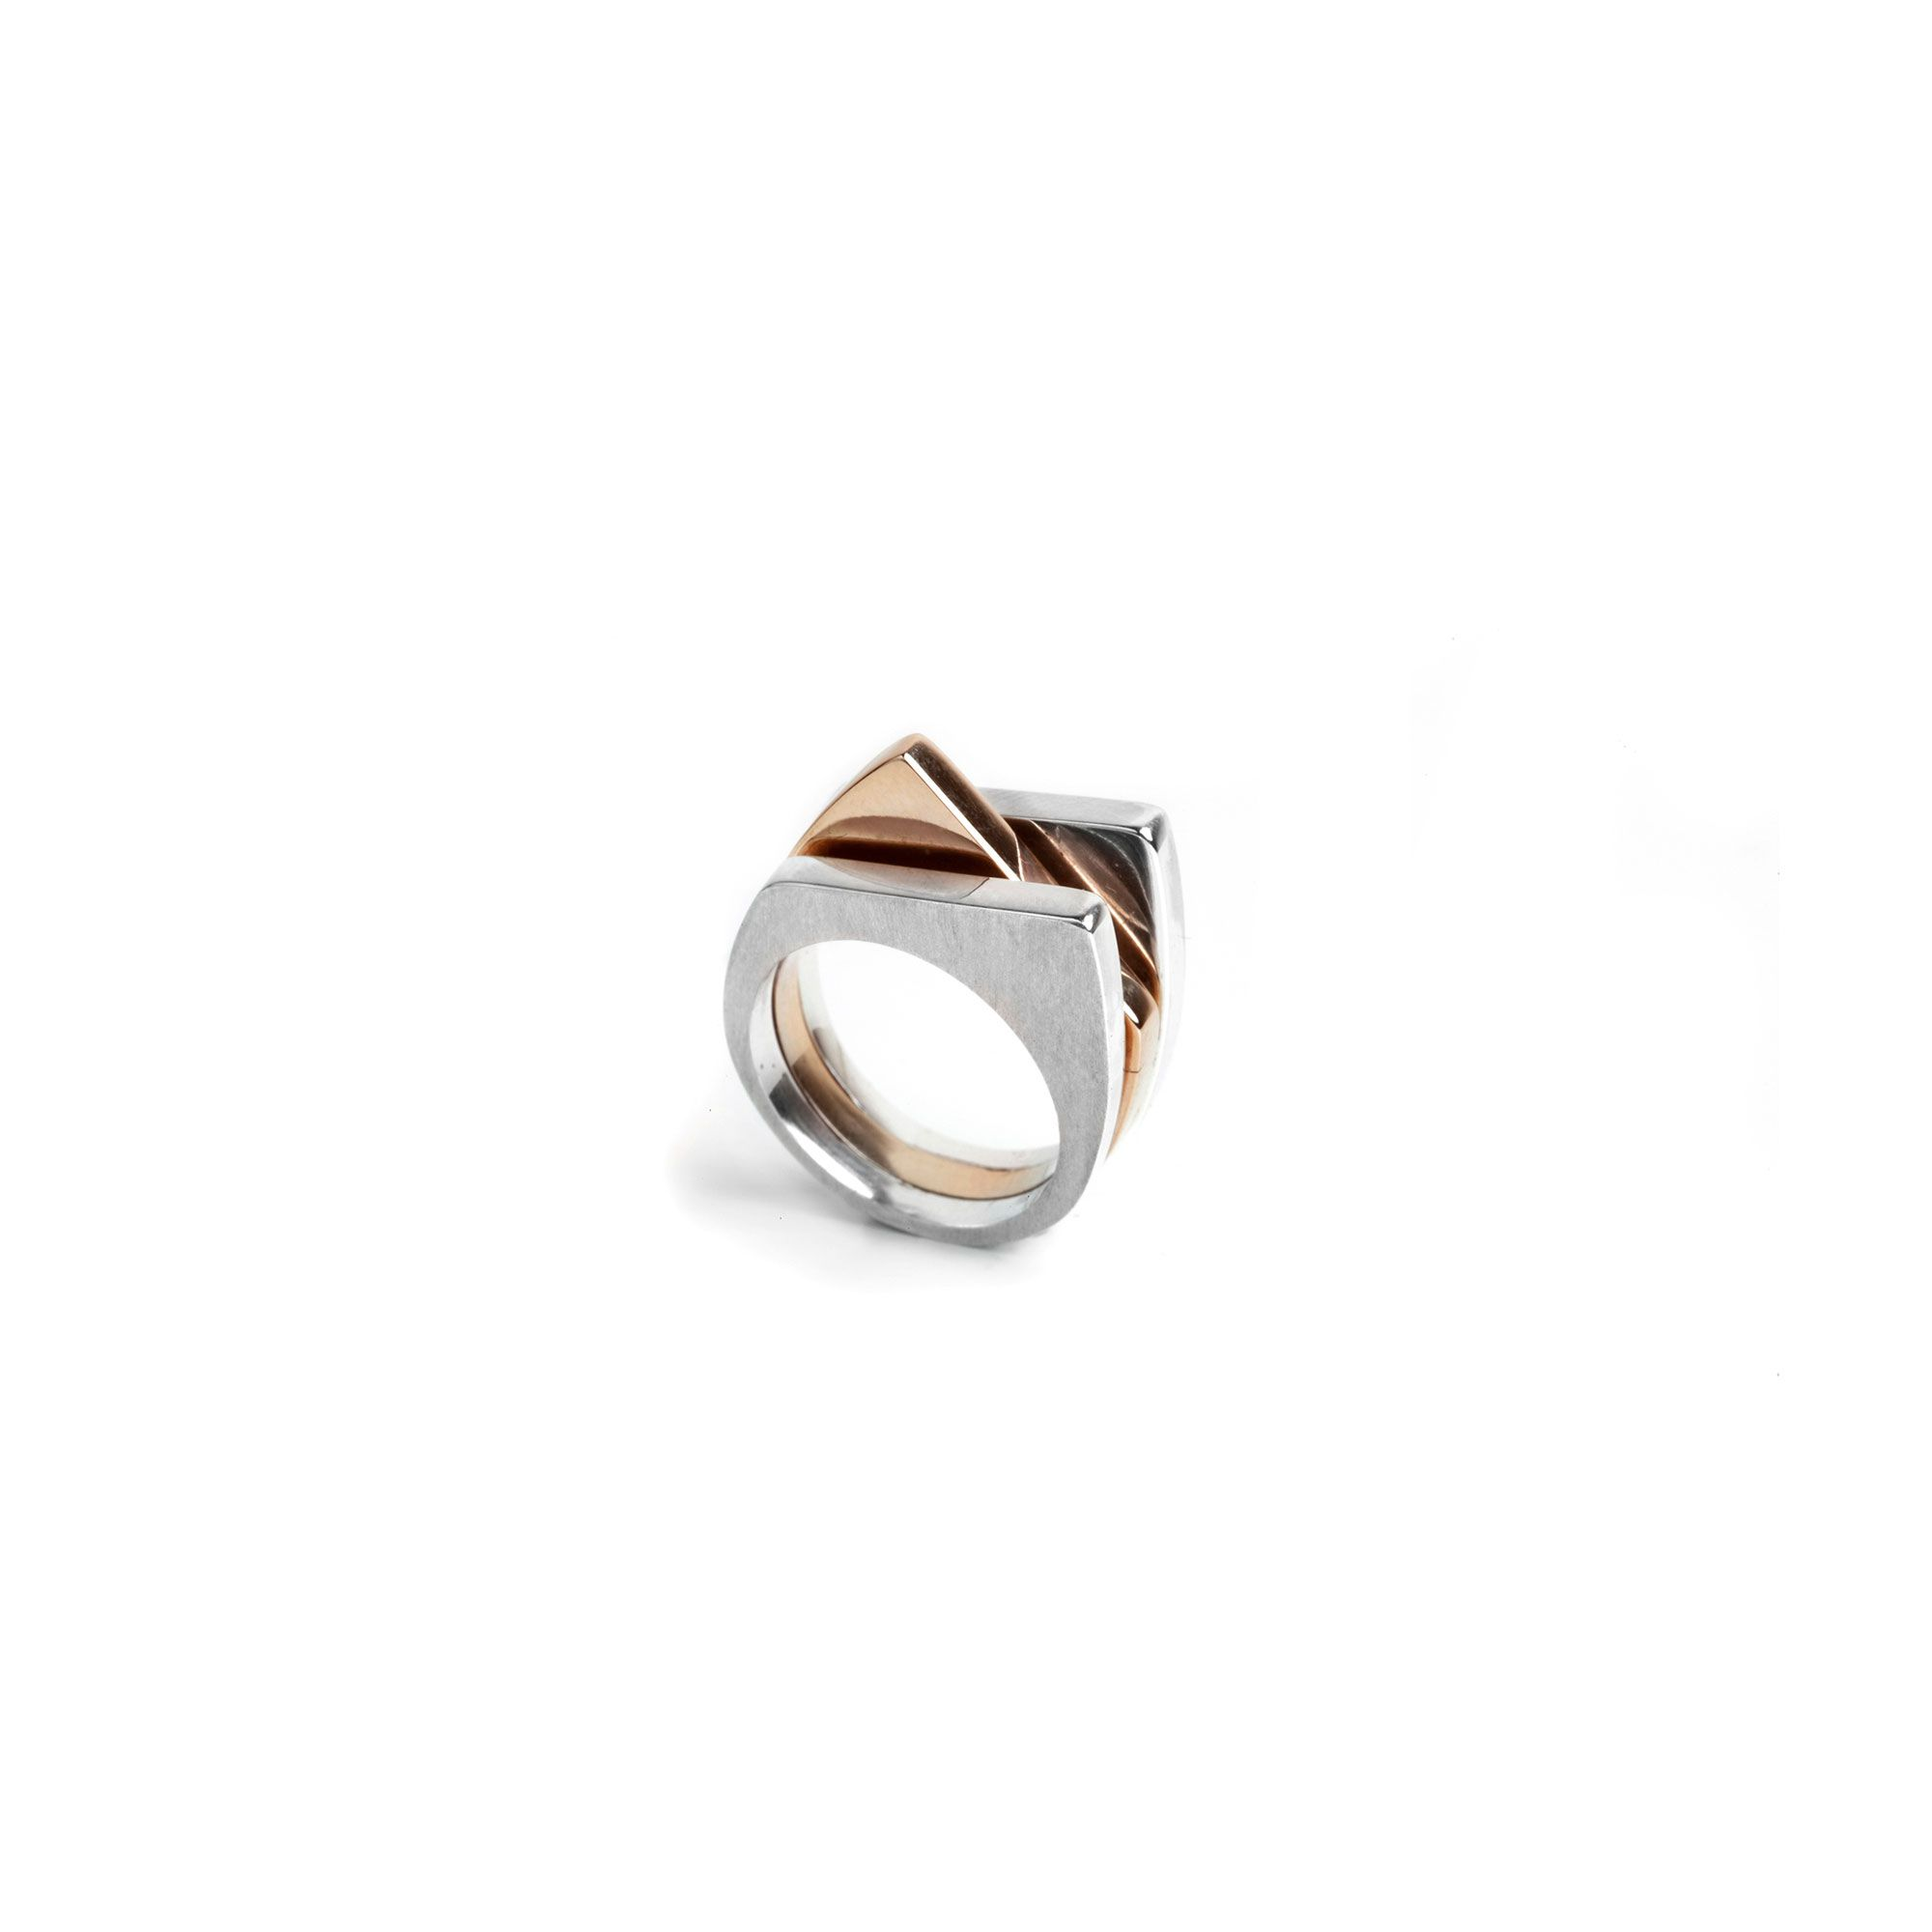 3 element 'Congiunzioni' ring Silver and bronze ring